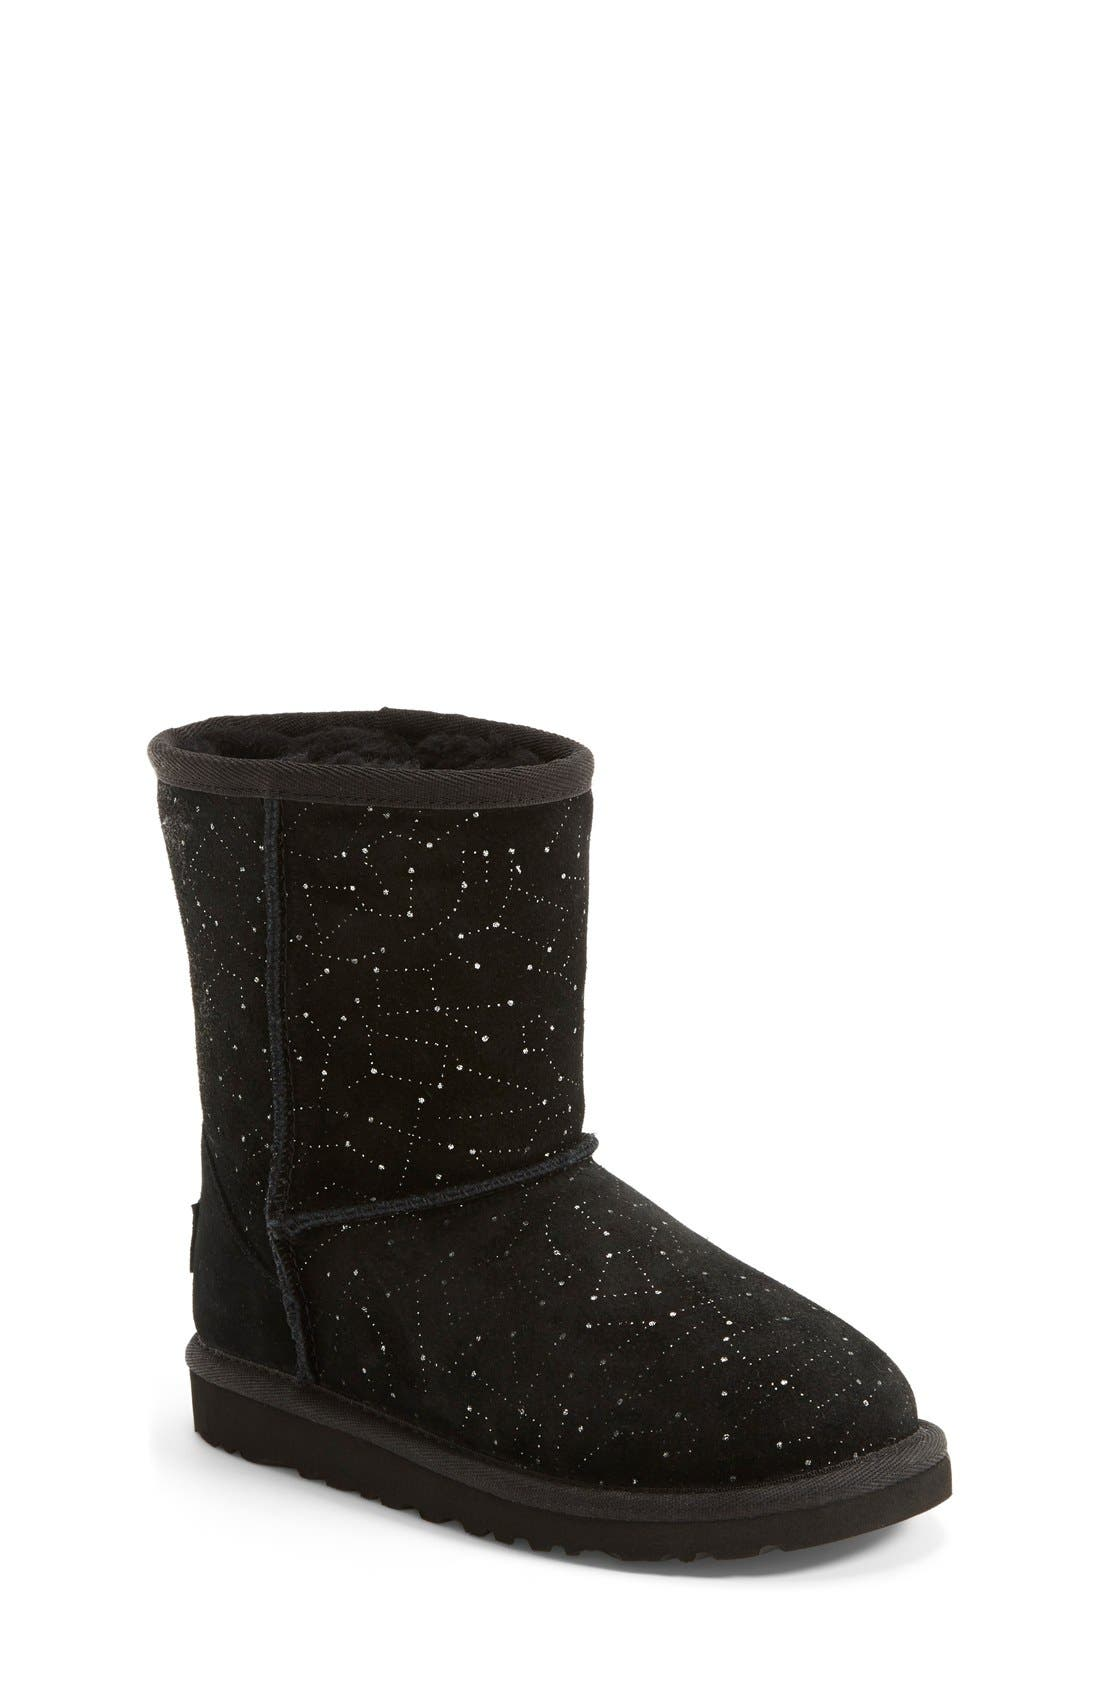 'Classic Short - Constellation' Boot, Main, color, 001